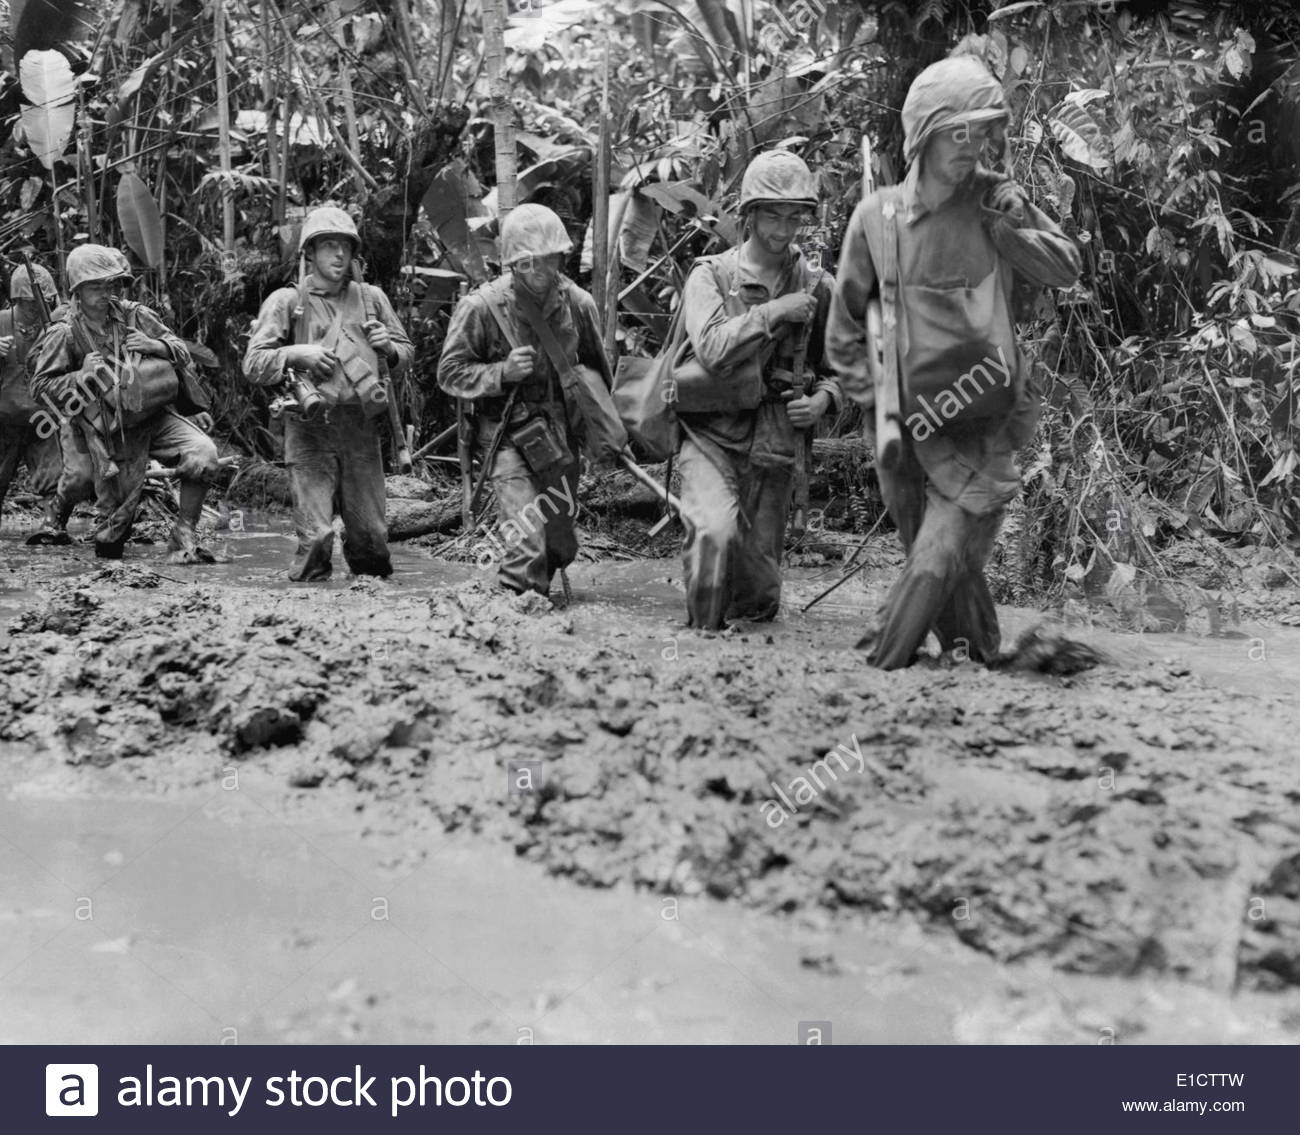 U.S. Marines run afoul of General Mud on Bougainville Island during World  War 2. The leader (right) is recovering his balance